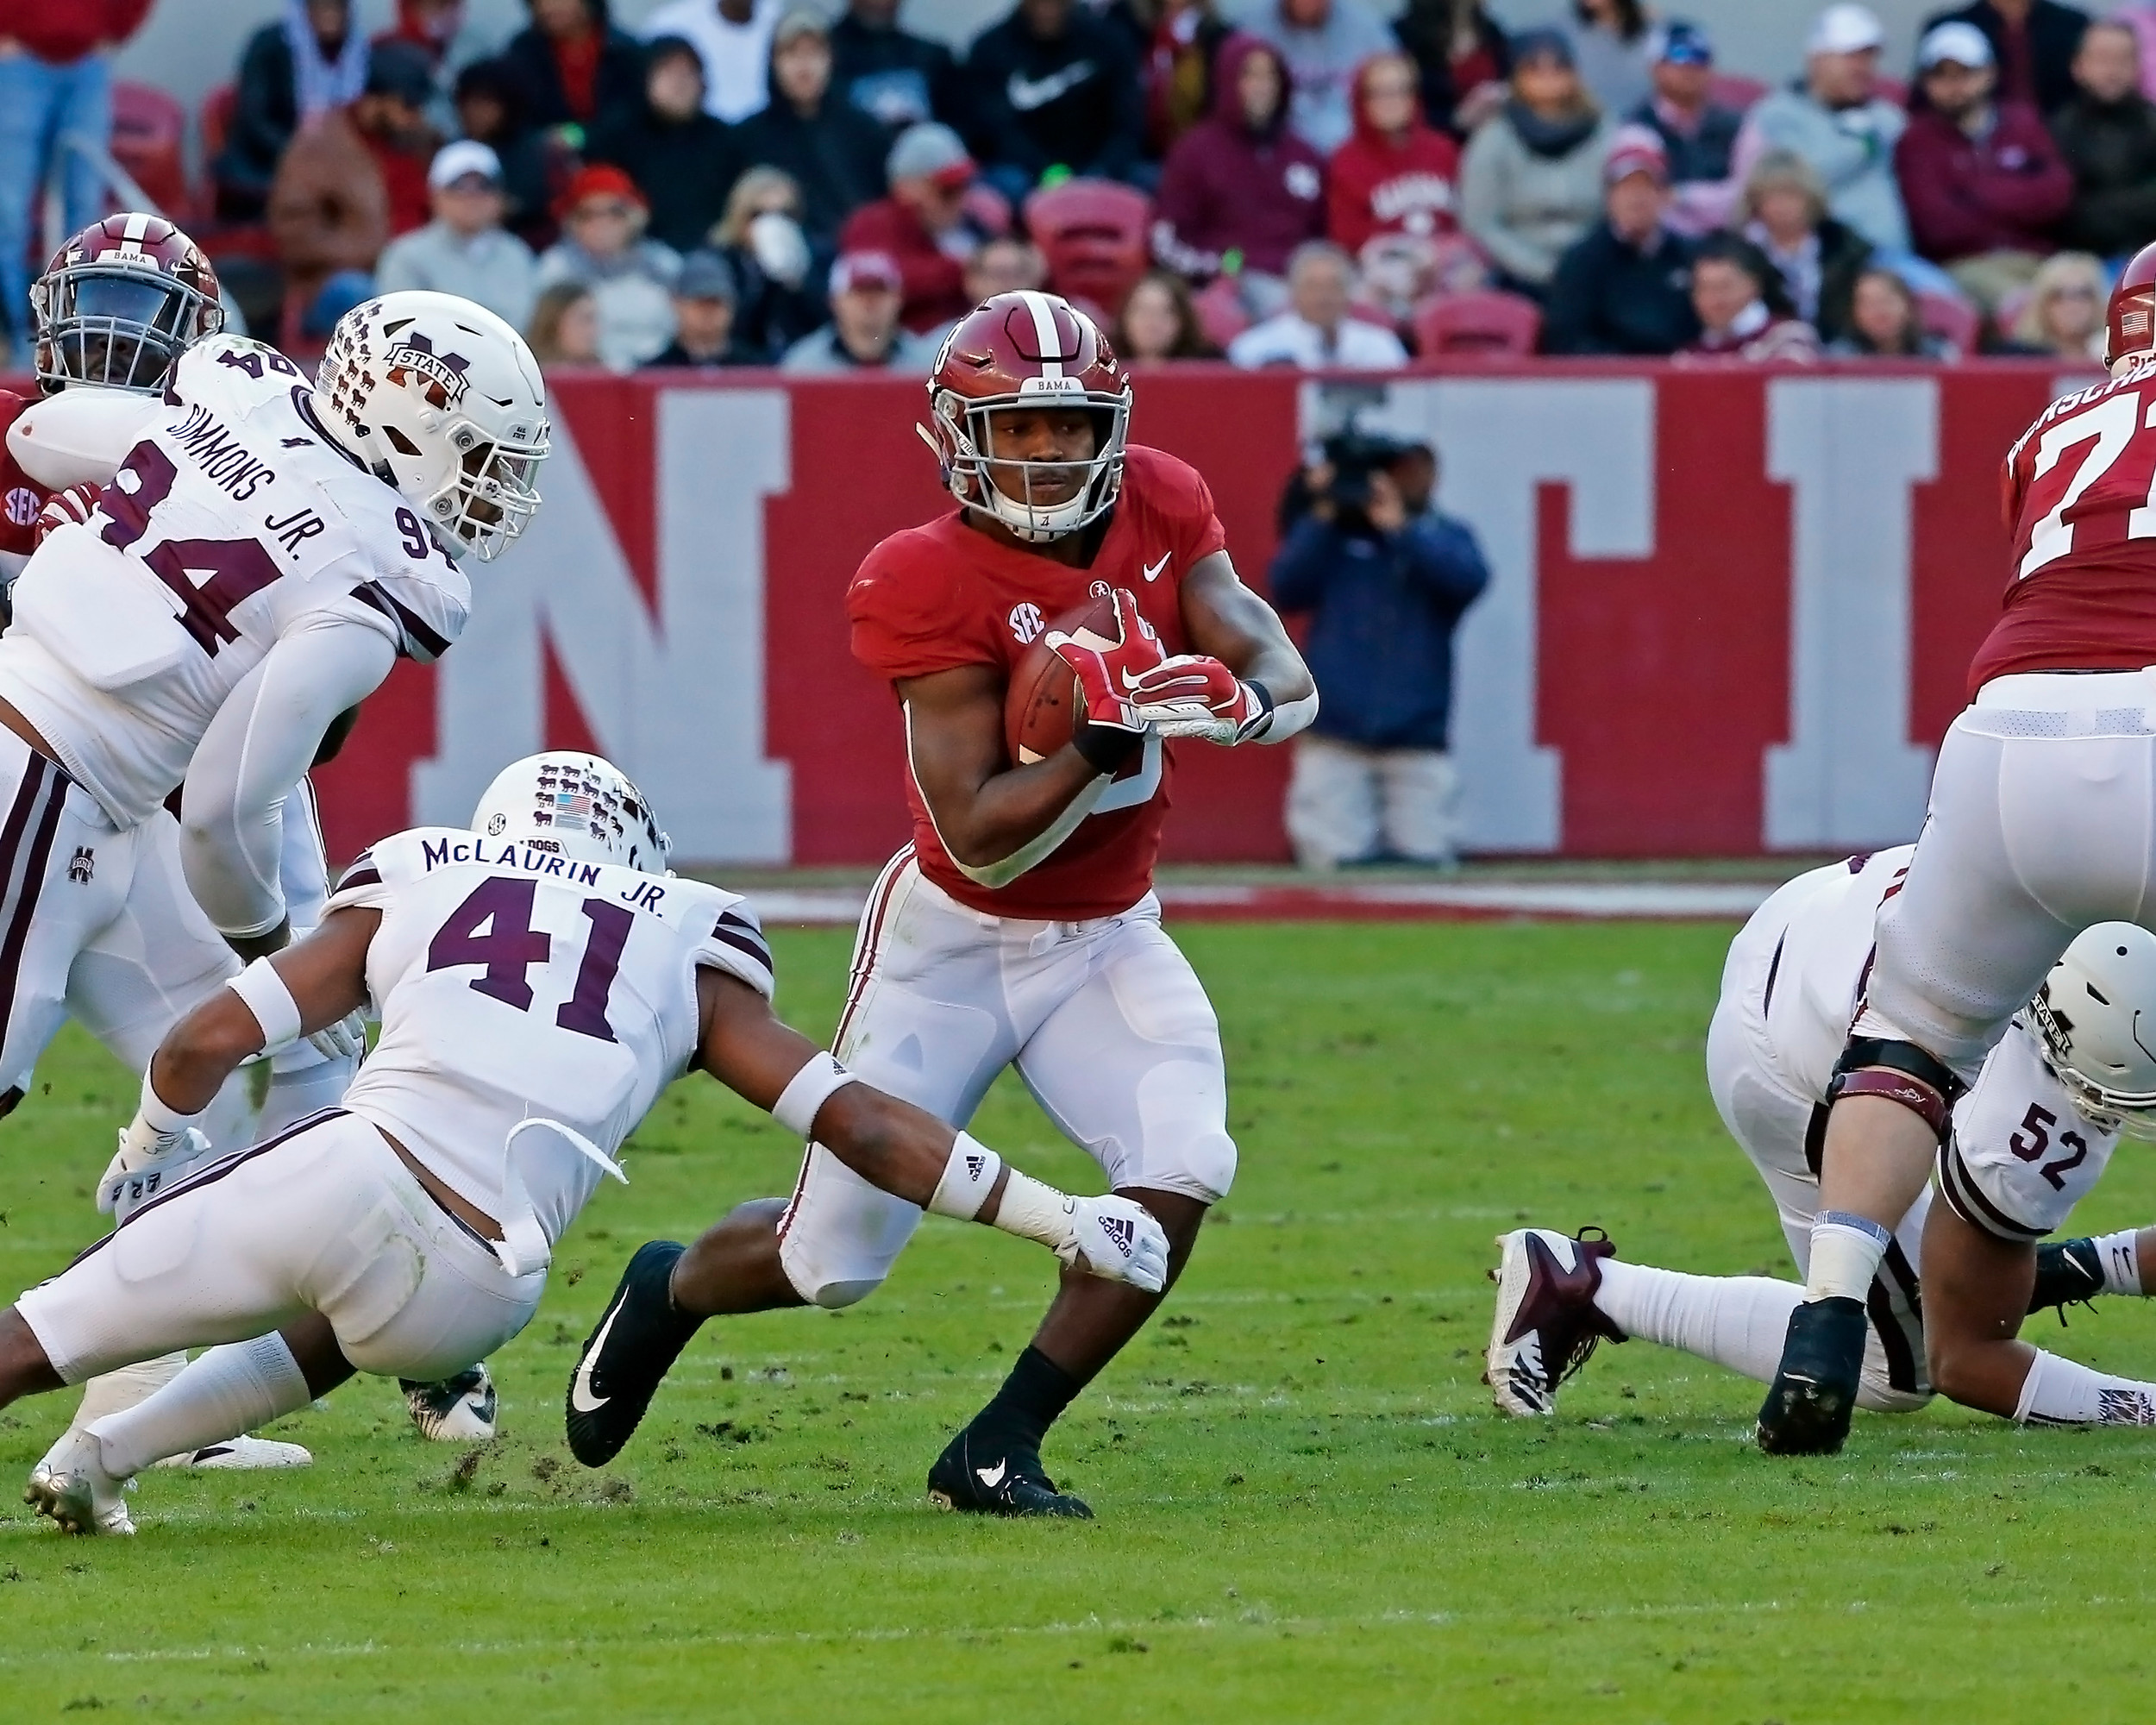 Alabama Crimson Tide running back Josh Jacobs (8) dodges a tackle from Mississippi State Bulldogs safety Mark McLaurin (41) during the game between Mississippi State and the University of Alabama at Bryant-Denny Stadium in Tuscaloosa, Al. Credit: Jason Clark / Daily Mountain Eagle